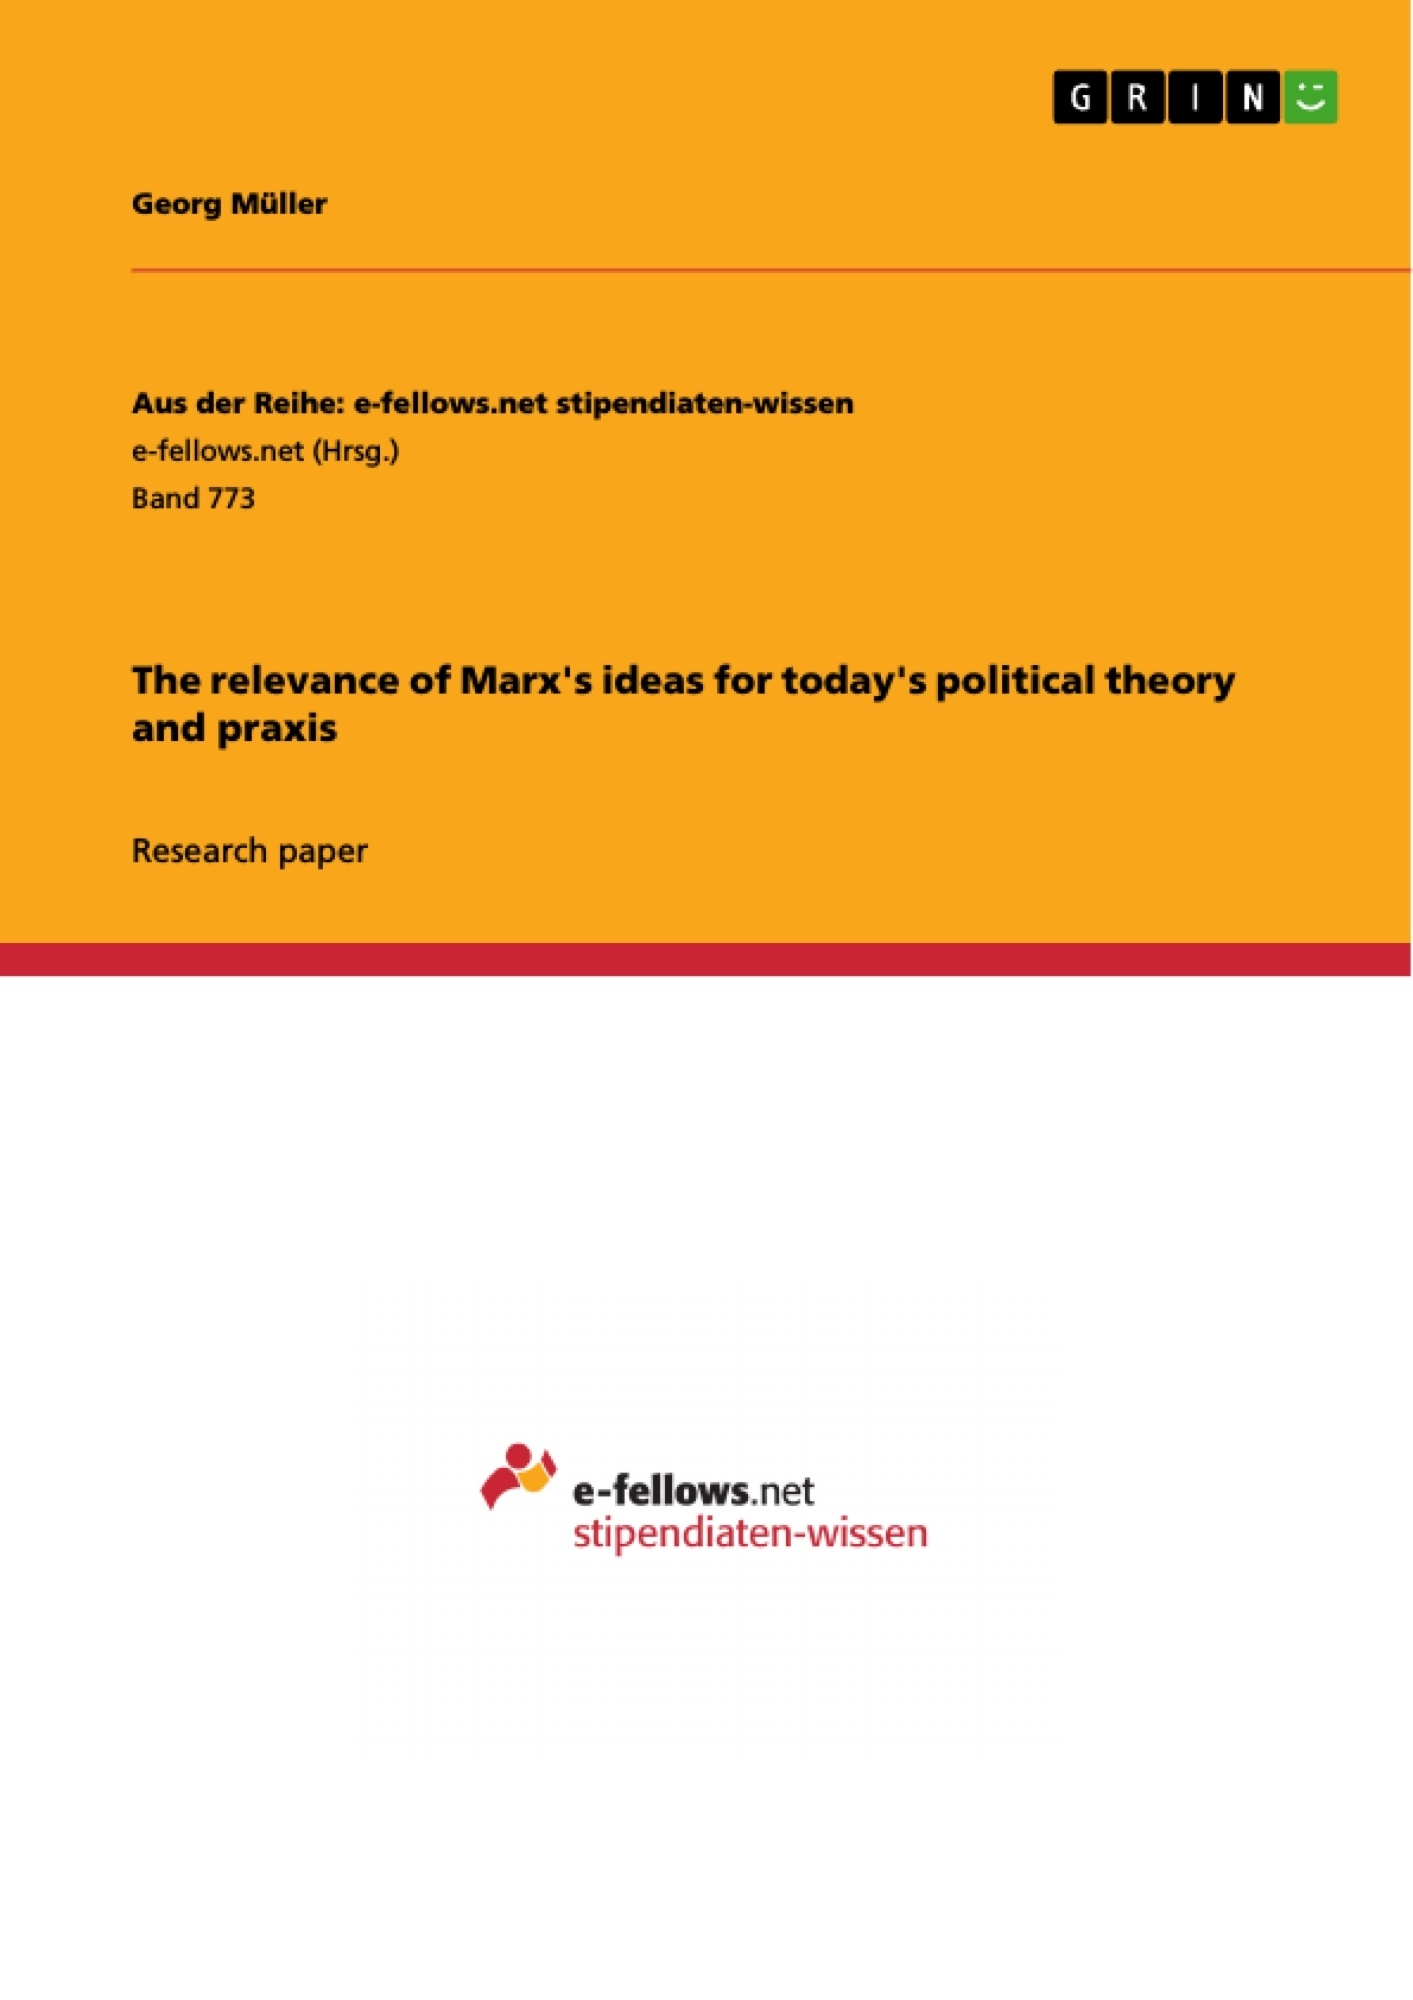 Title: The relevance of Marx's ideas for today's political theory and praxis